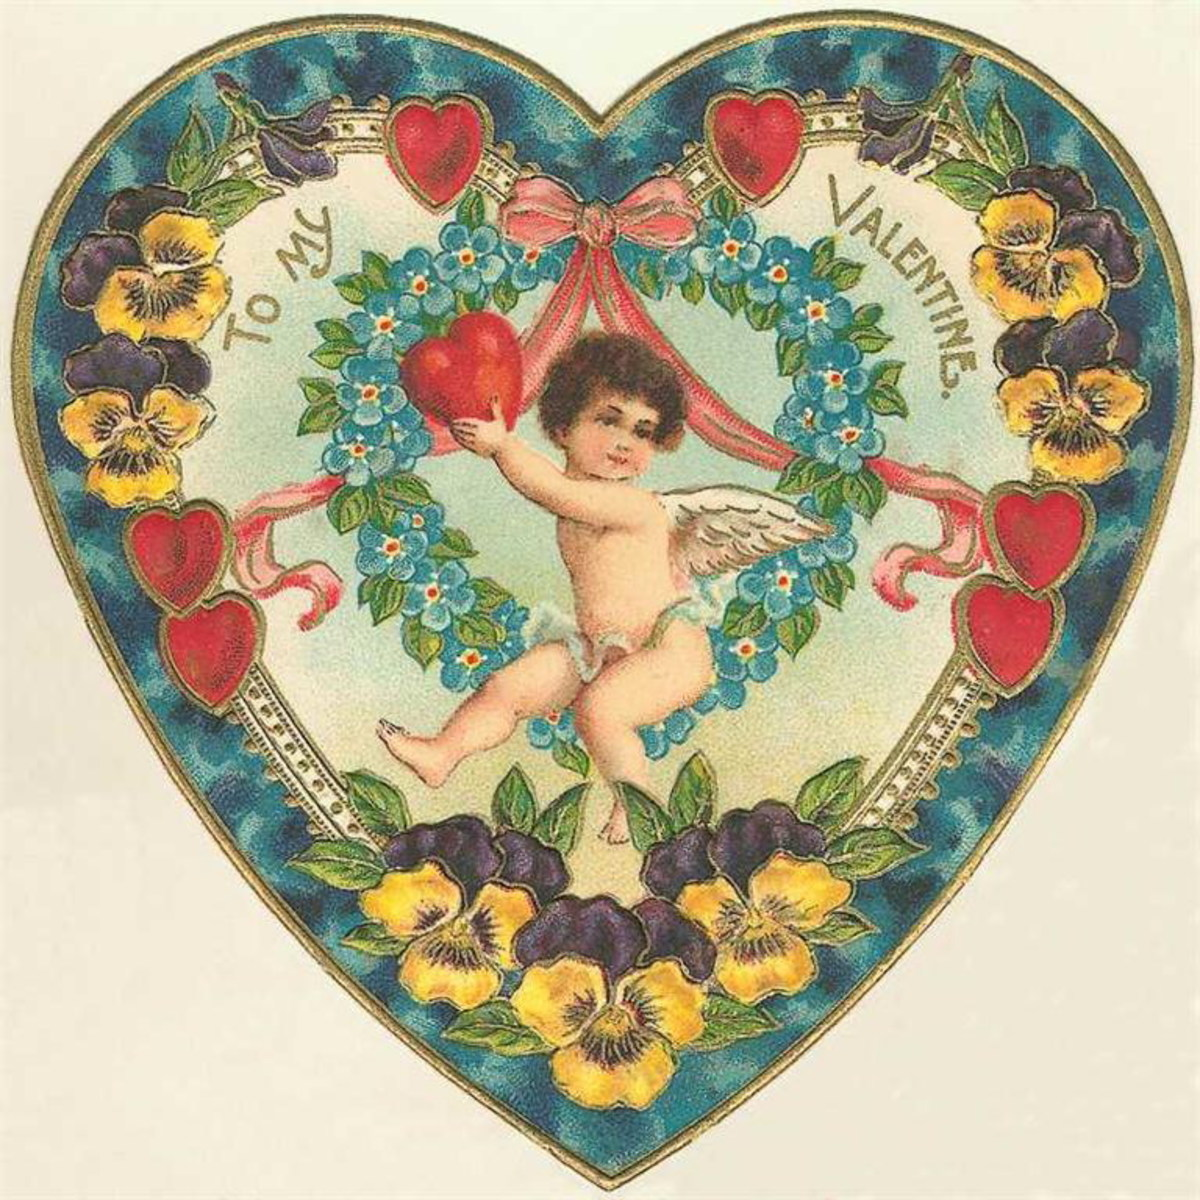 Free vintage clip art Valentine's Day angel in heart with flowers